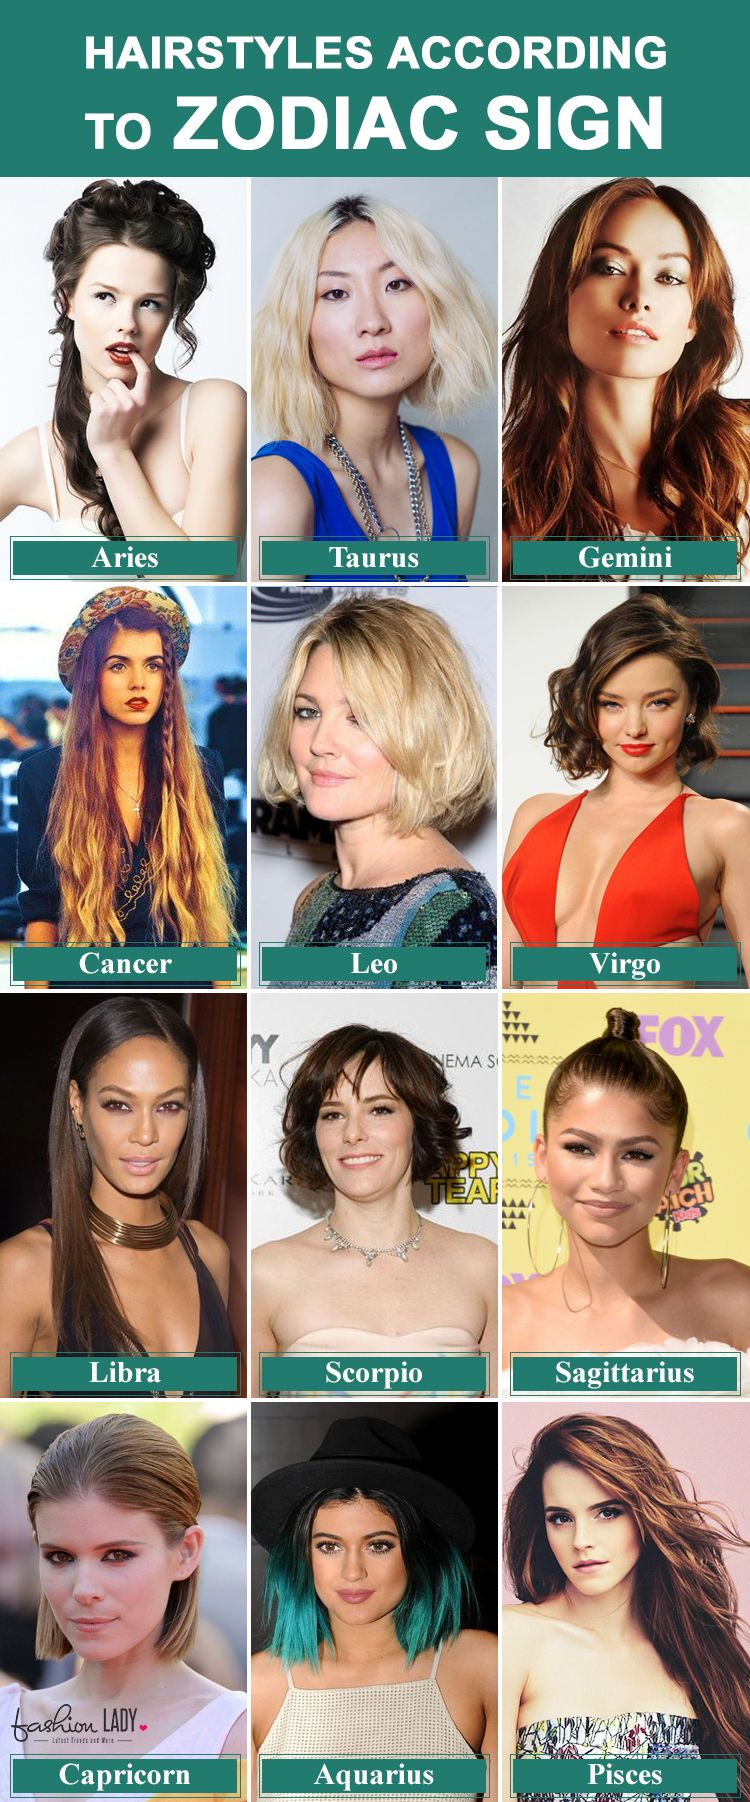 sun sign hairstyles: style your hair according to zodiac sign rules